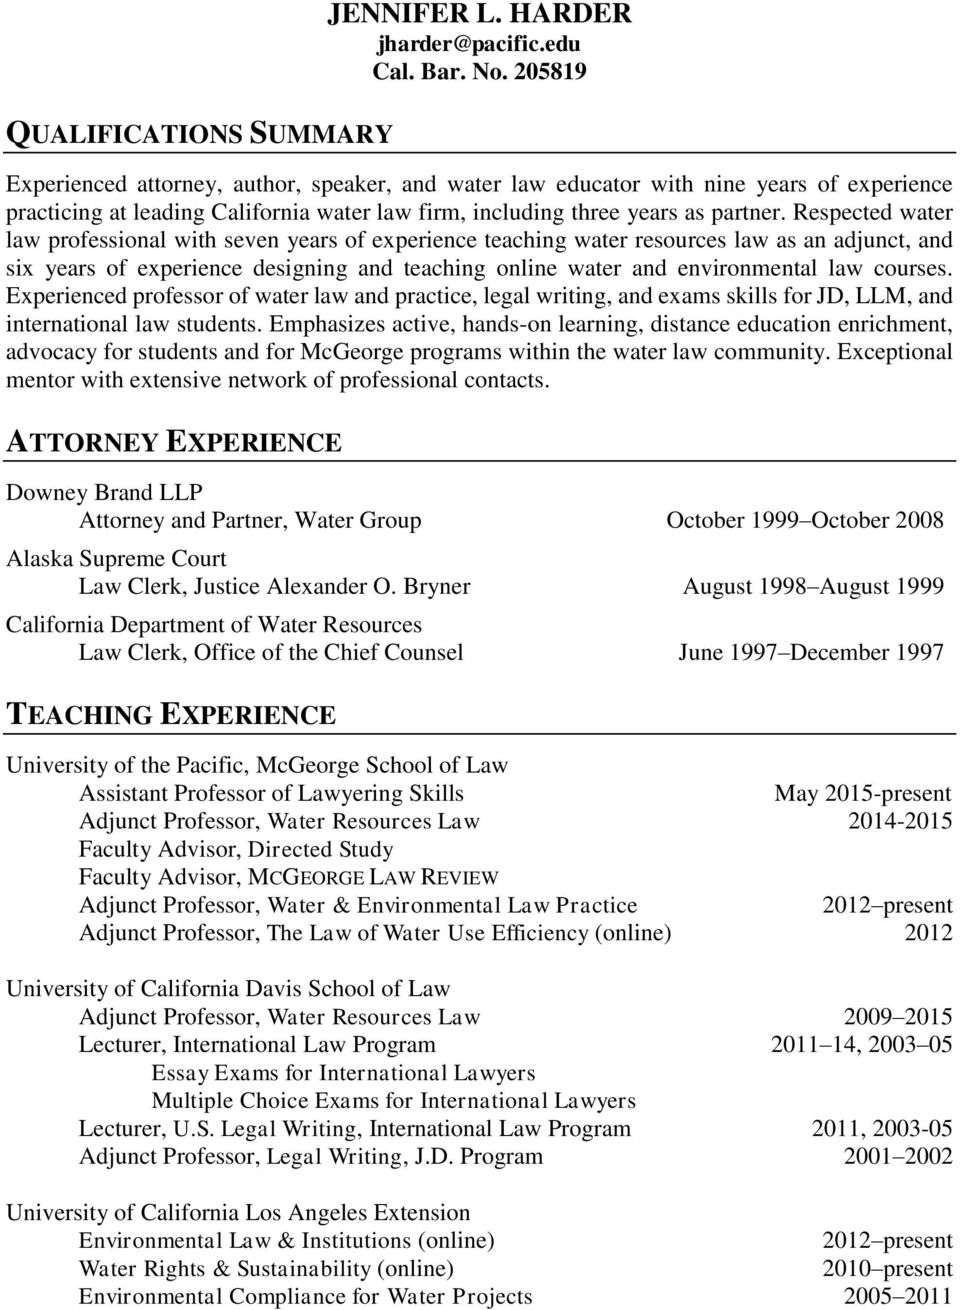 Respected water law professional with seven years of experience teaching water resources law as an adjunct, and six years of experience designing and teaching online water and environmental law